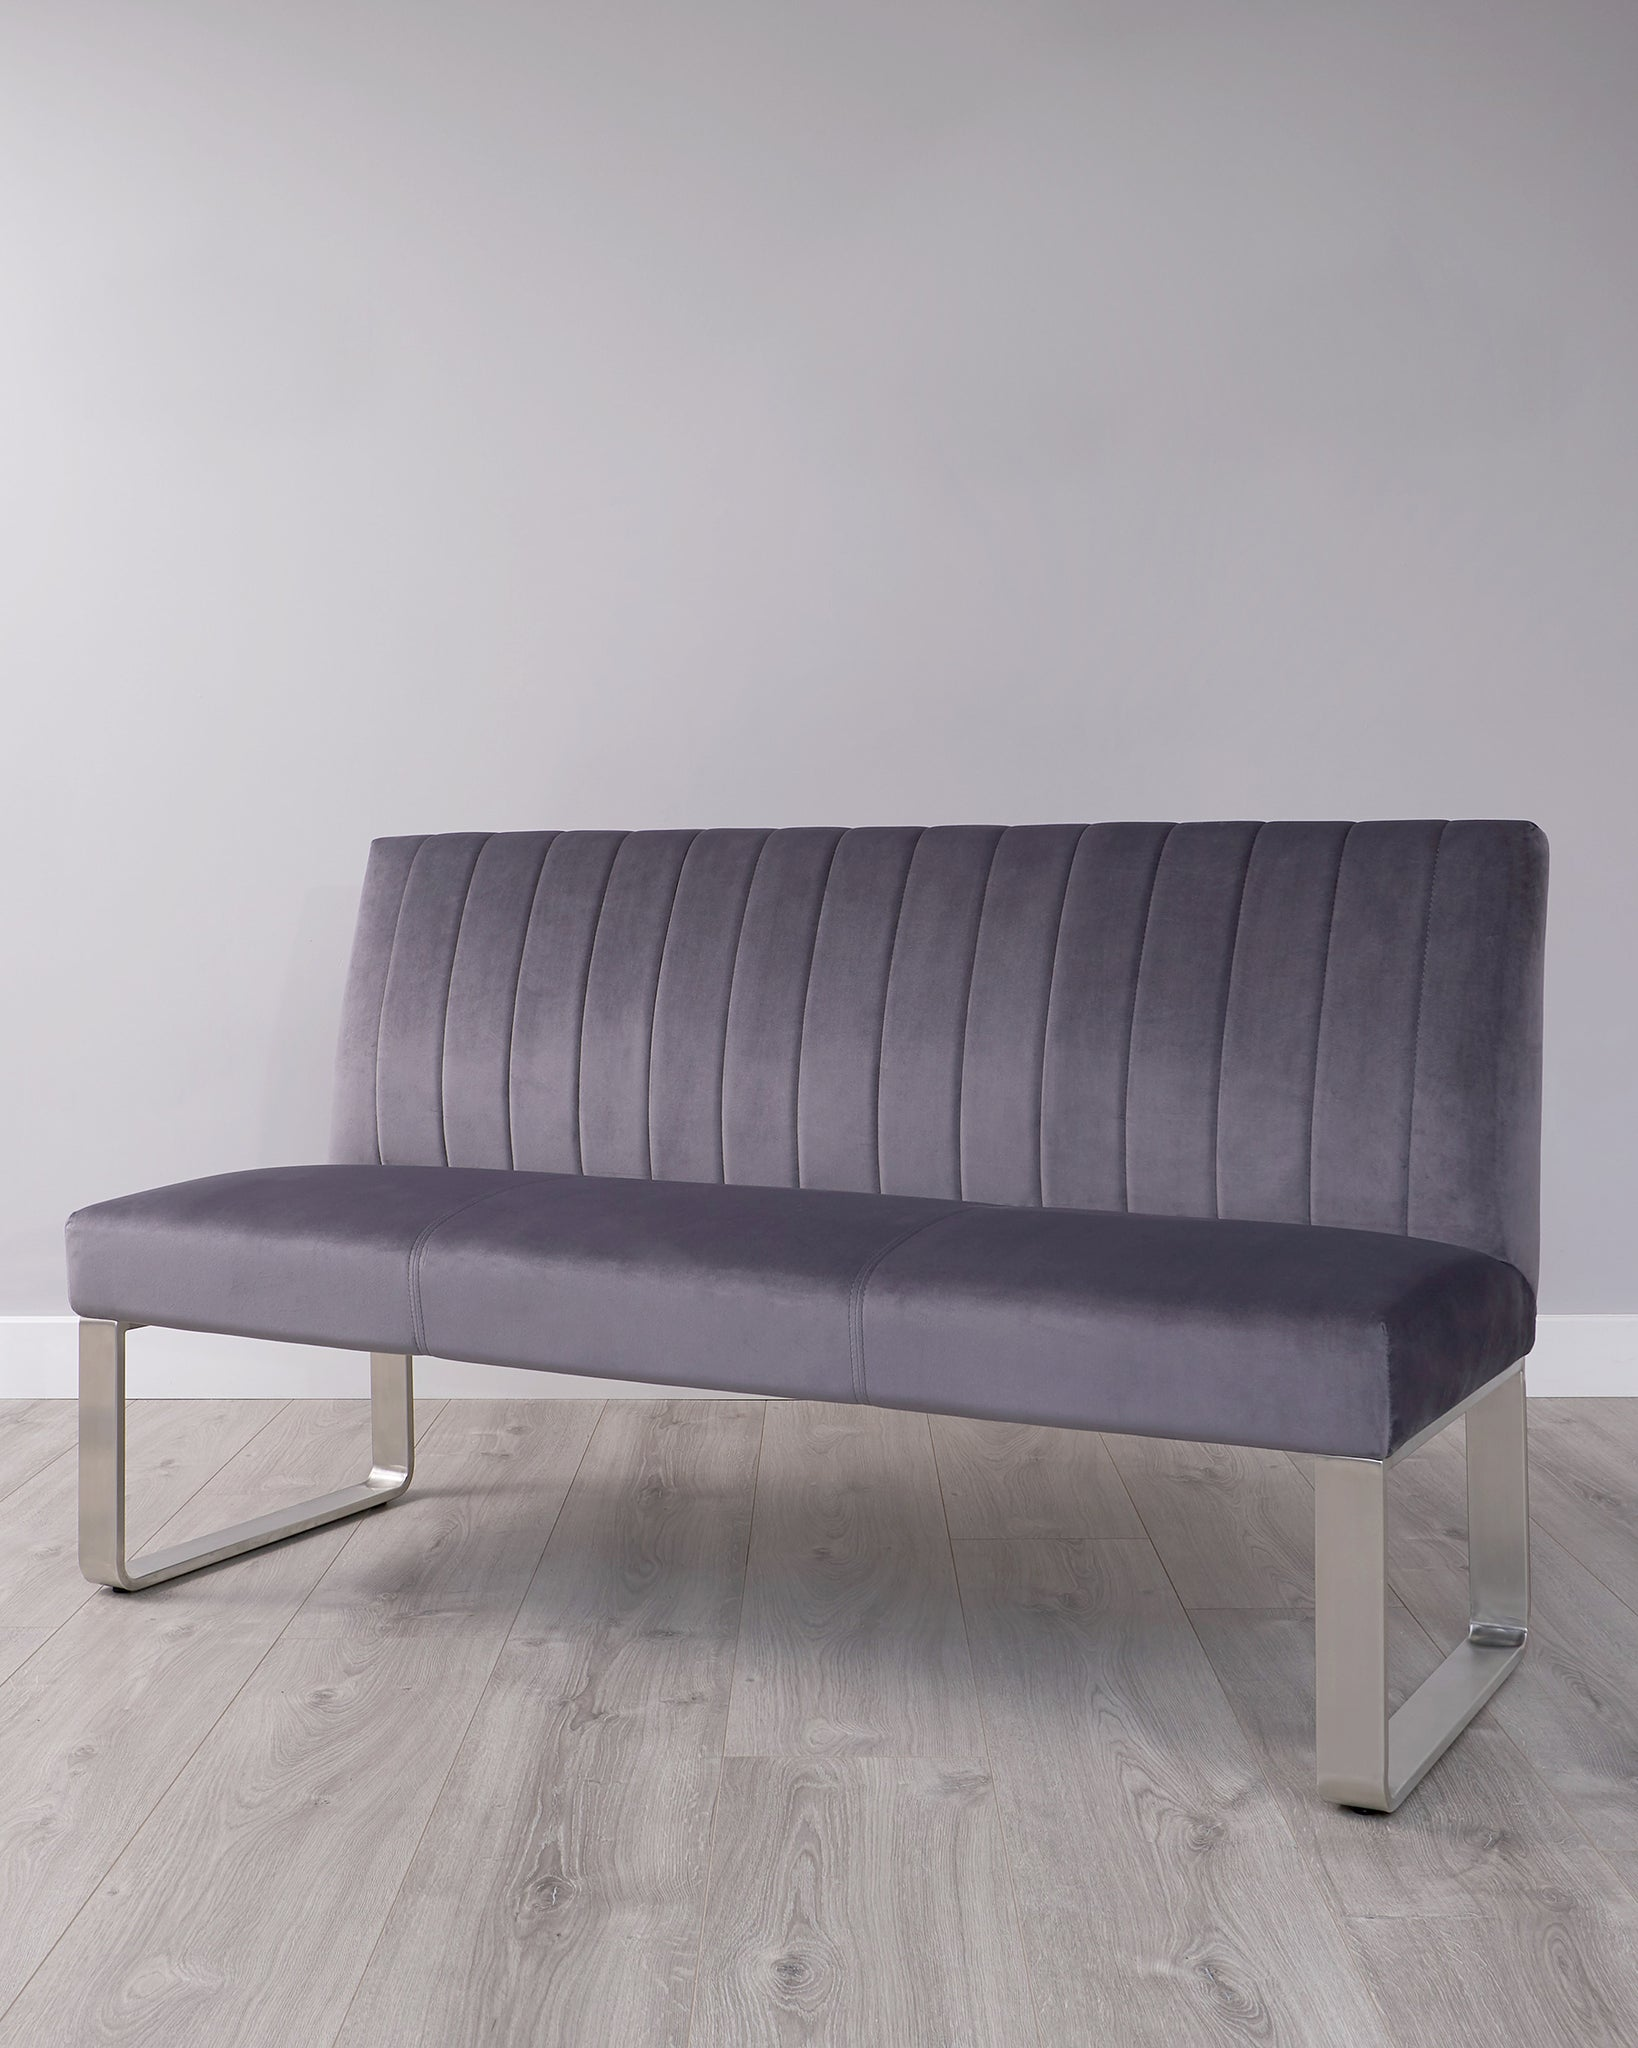 Ophelia 3 Seater Dark Grey Velvet And Stainless Steel Bench With Backrest